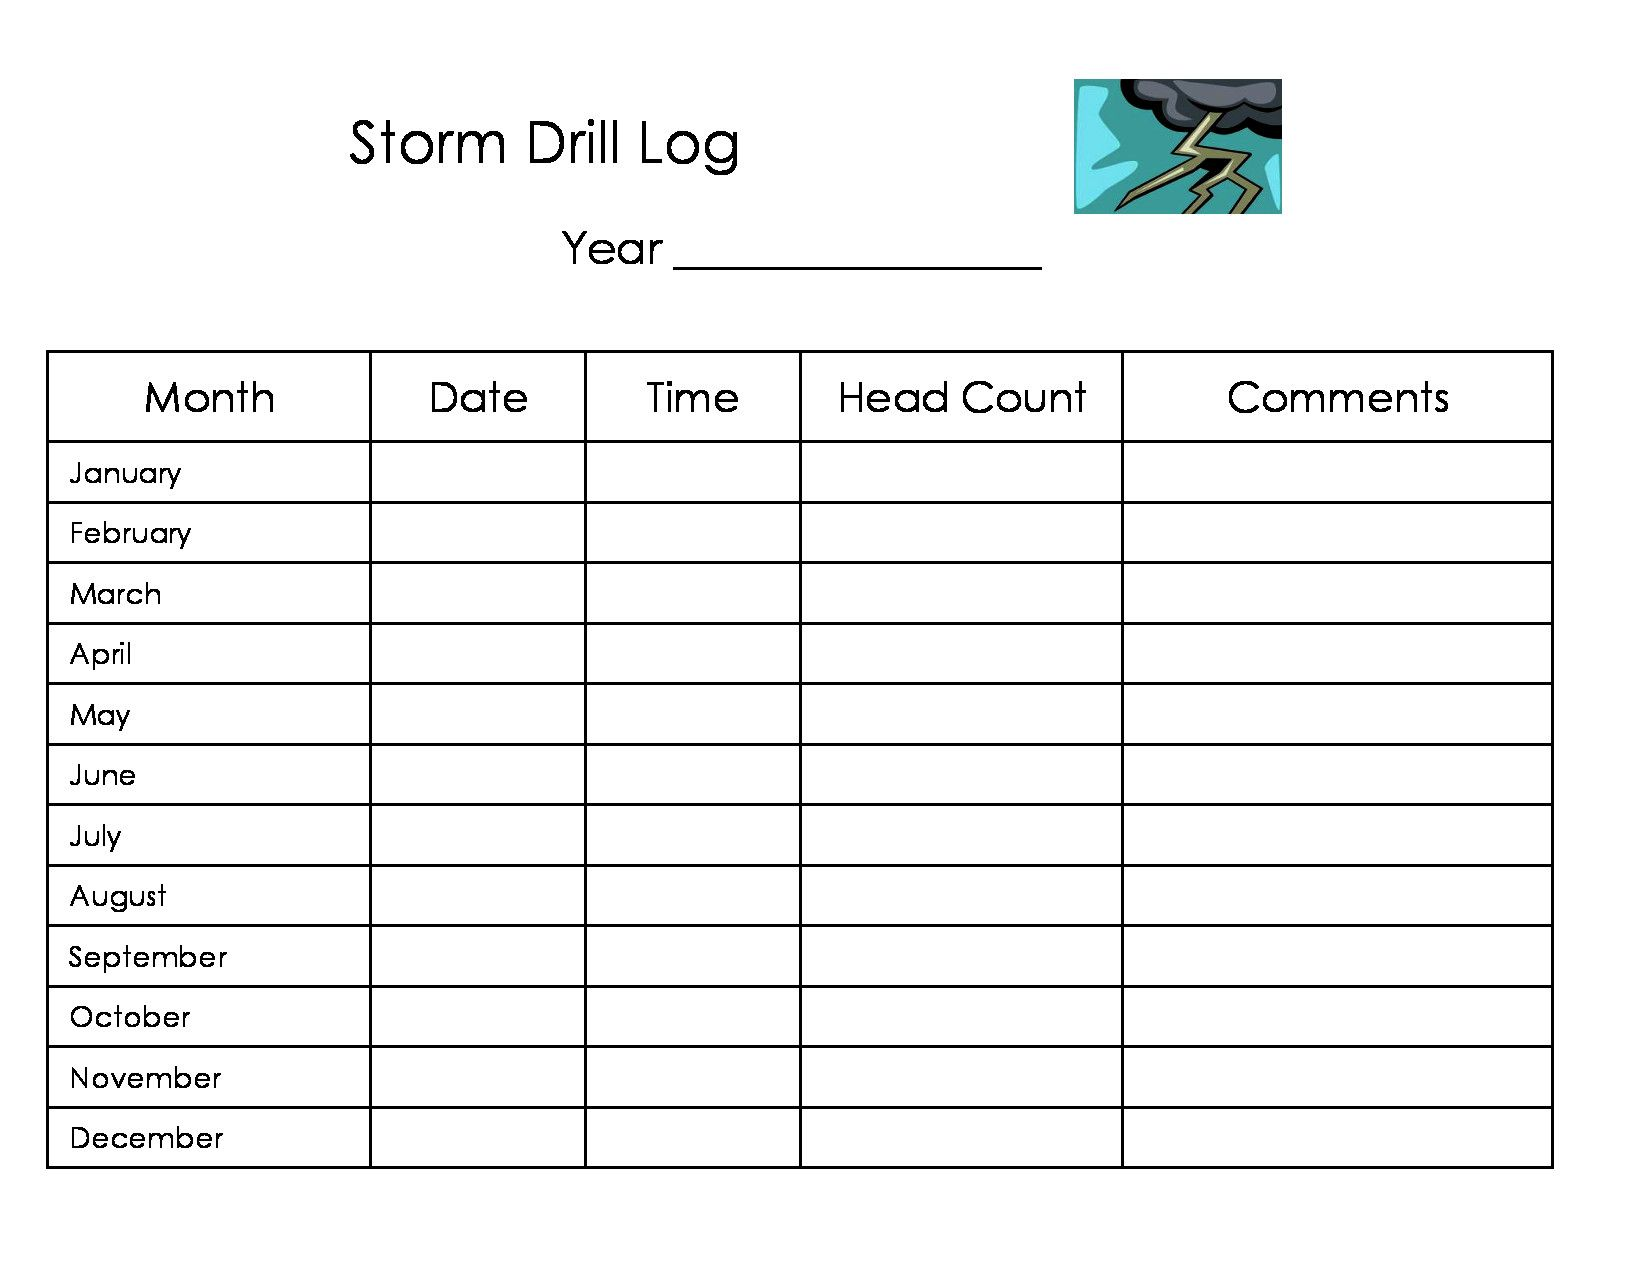 Free Printable Daycare Storm Drill Log Form